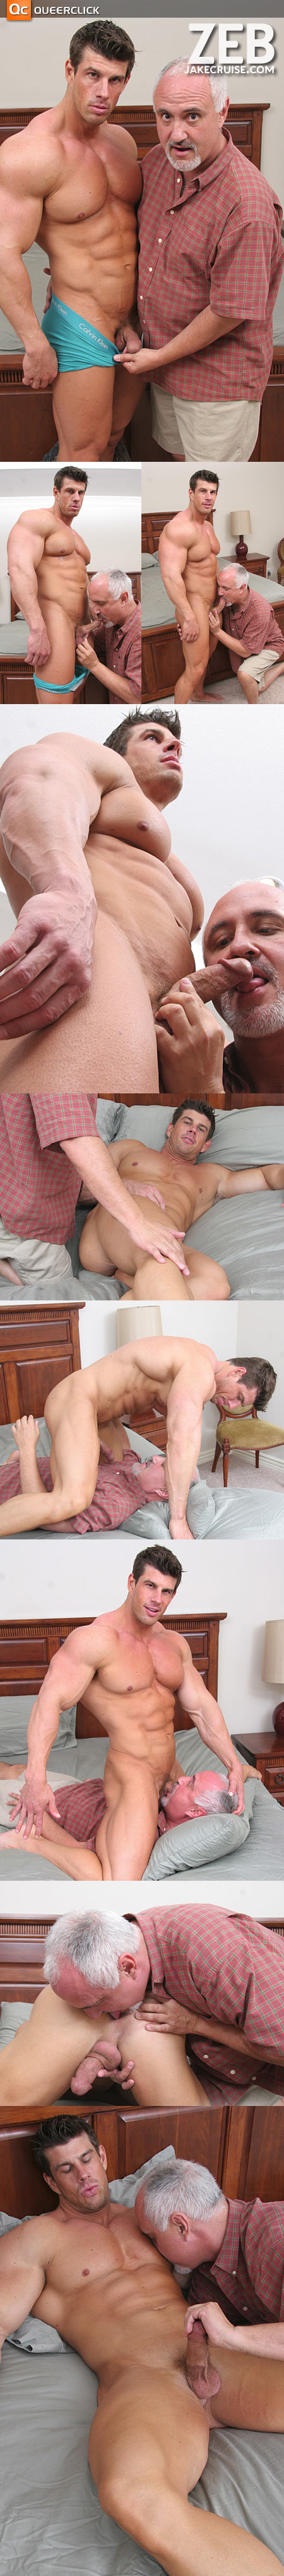 Like a Roman God of Strength, Zeb Atlas gets his dick sucked.